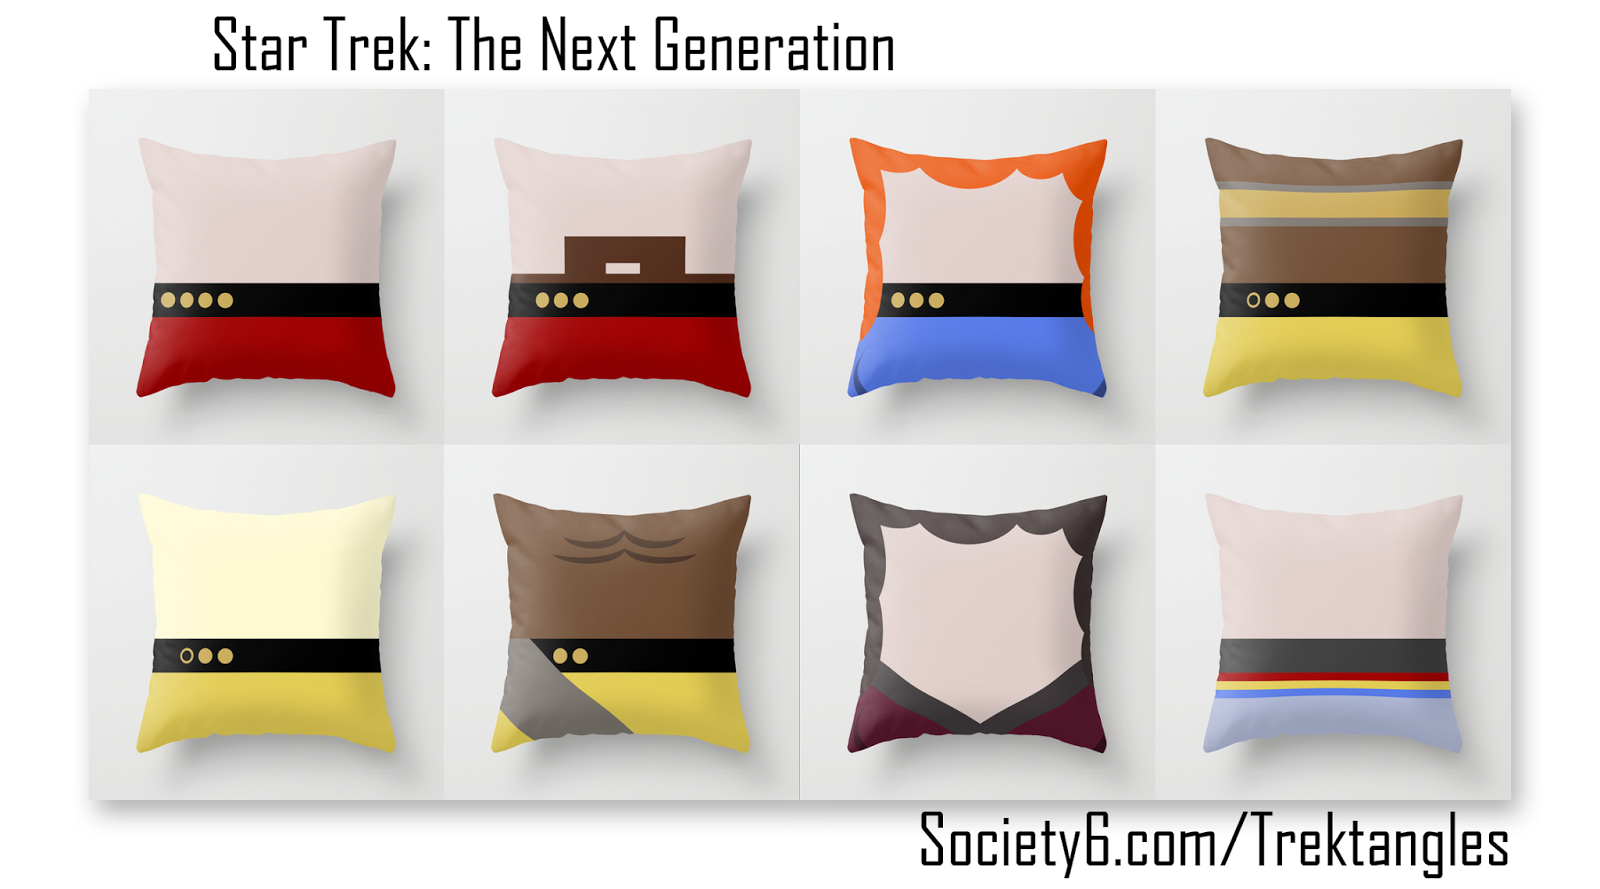 Star Trek: The Next Generation - Throw Pillows